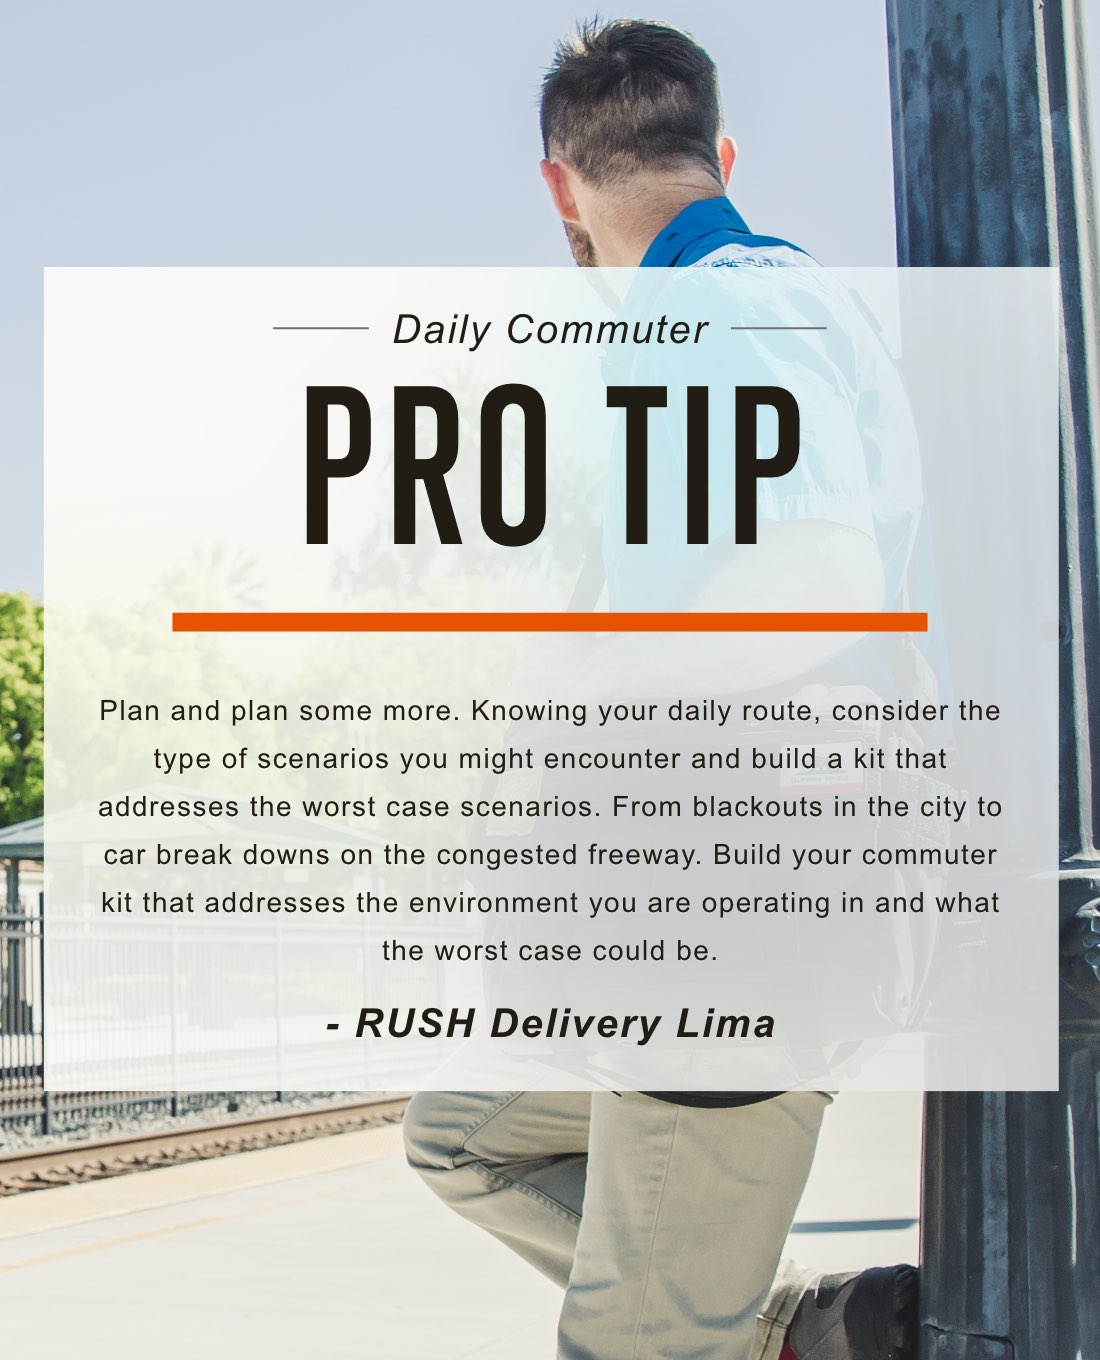 RUSH Delivery Lima